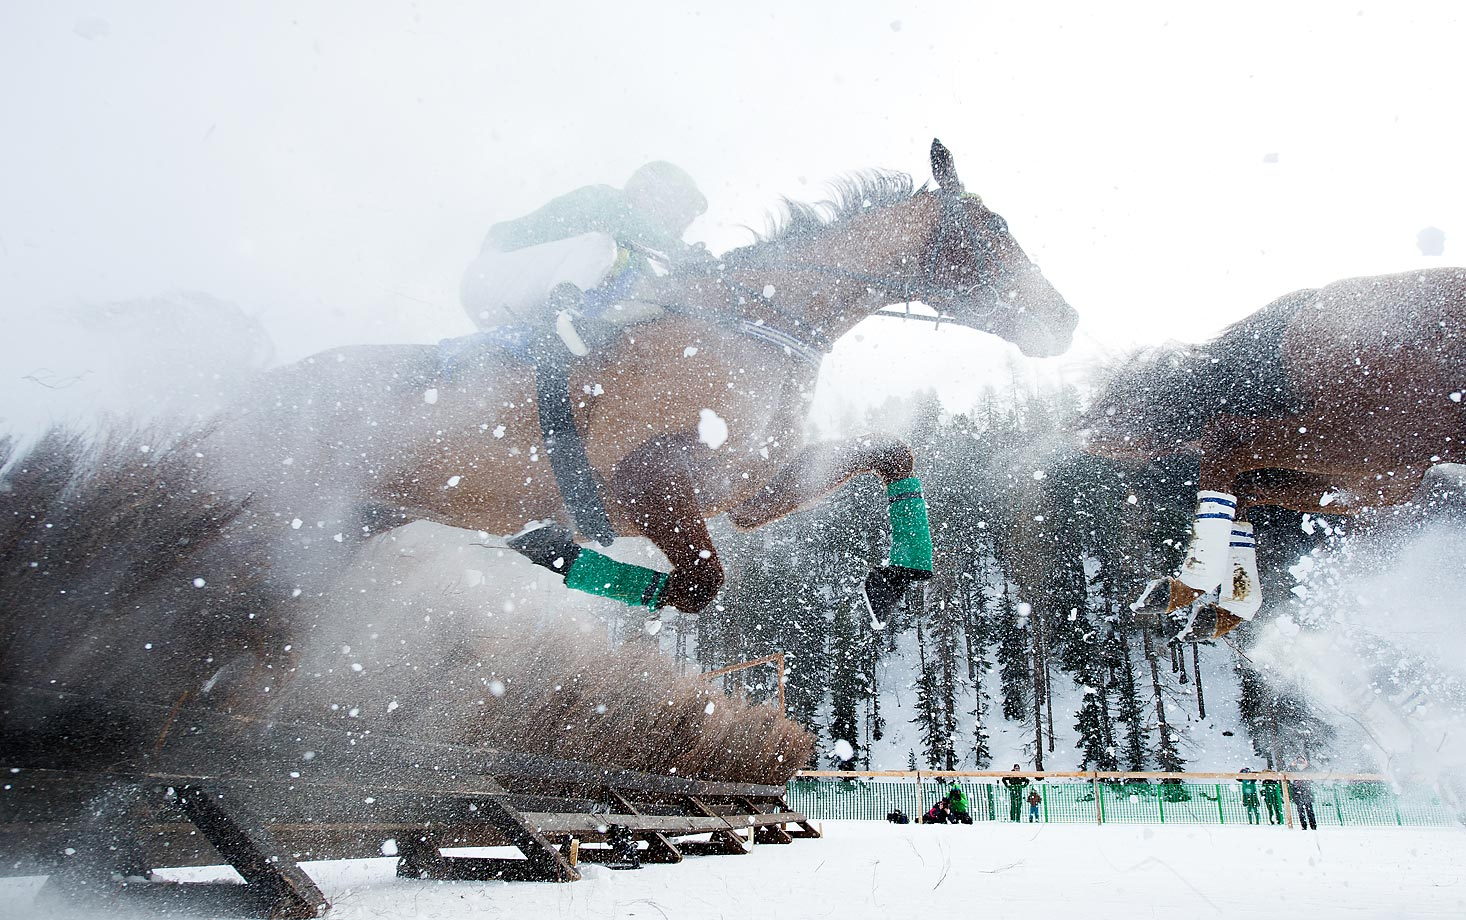 Horse jump over a barrier during the Hurdles Prix Arosa Race of the White Turf St. Moritz, in Switzerland.